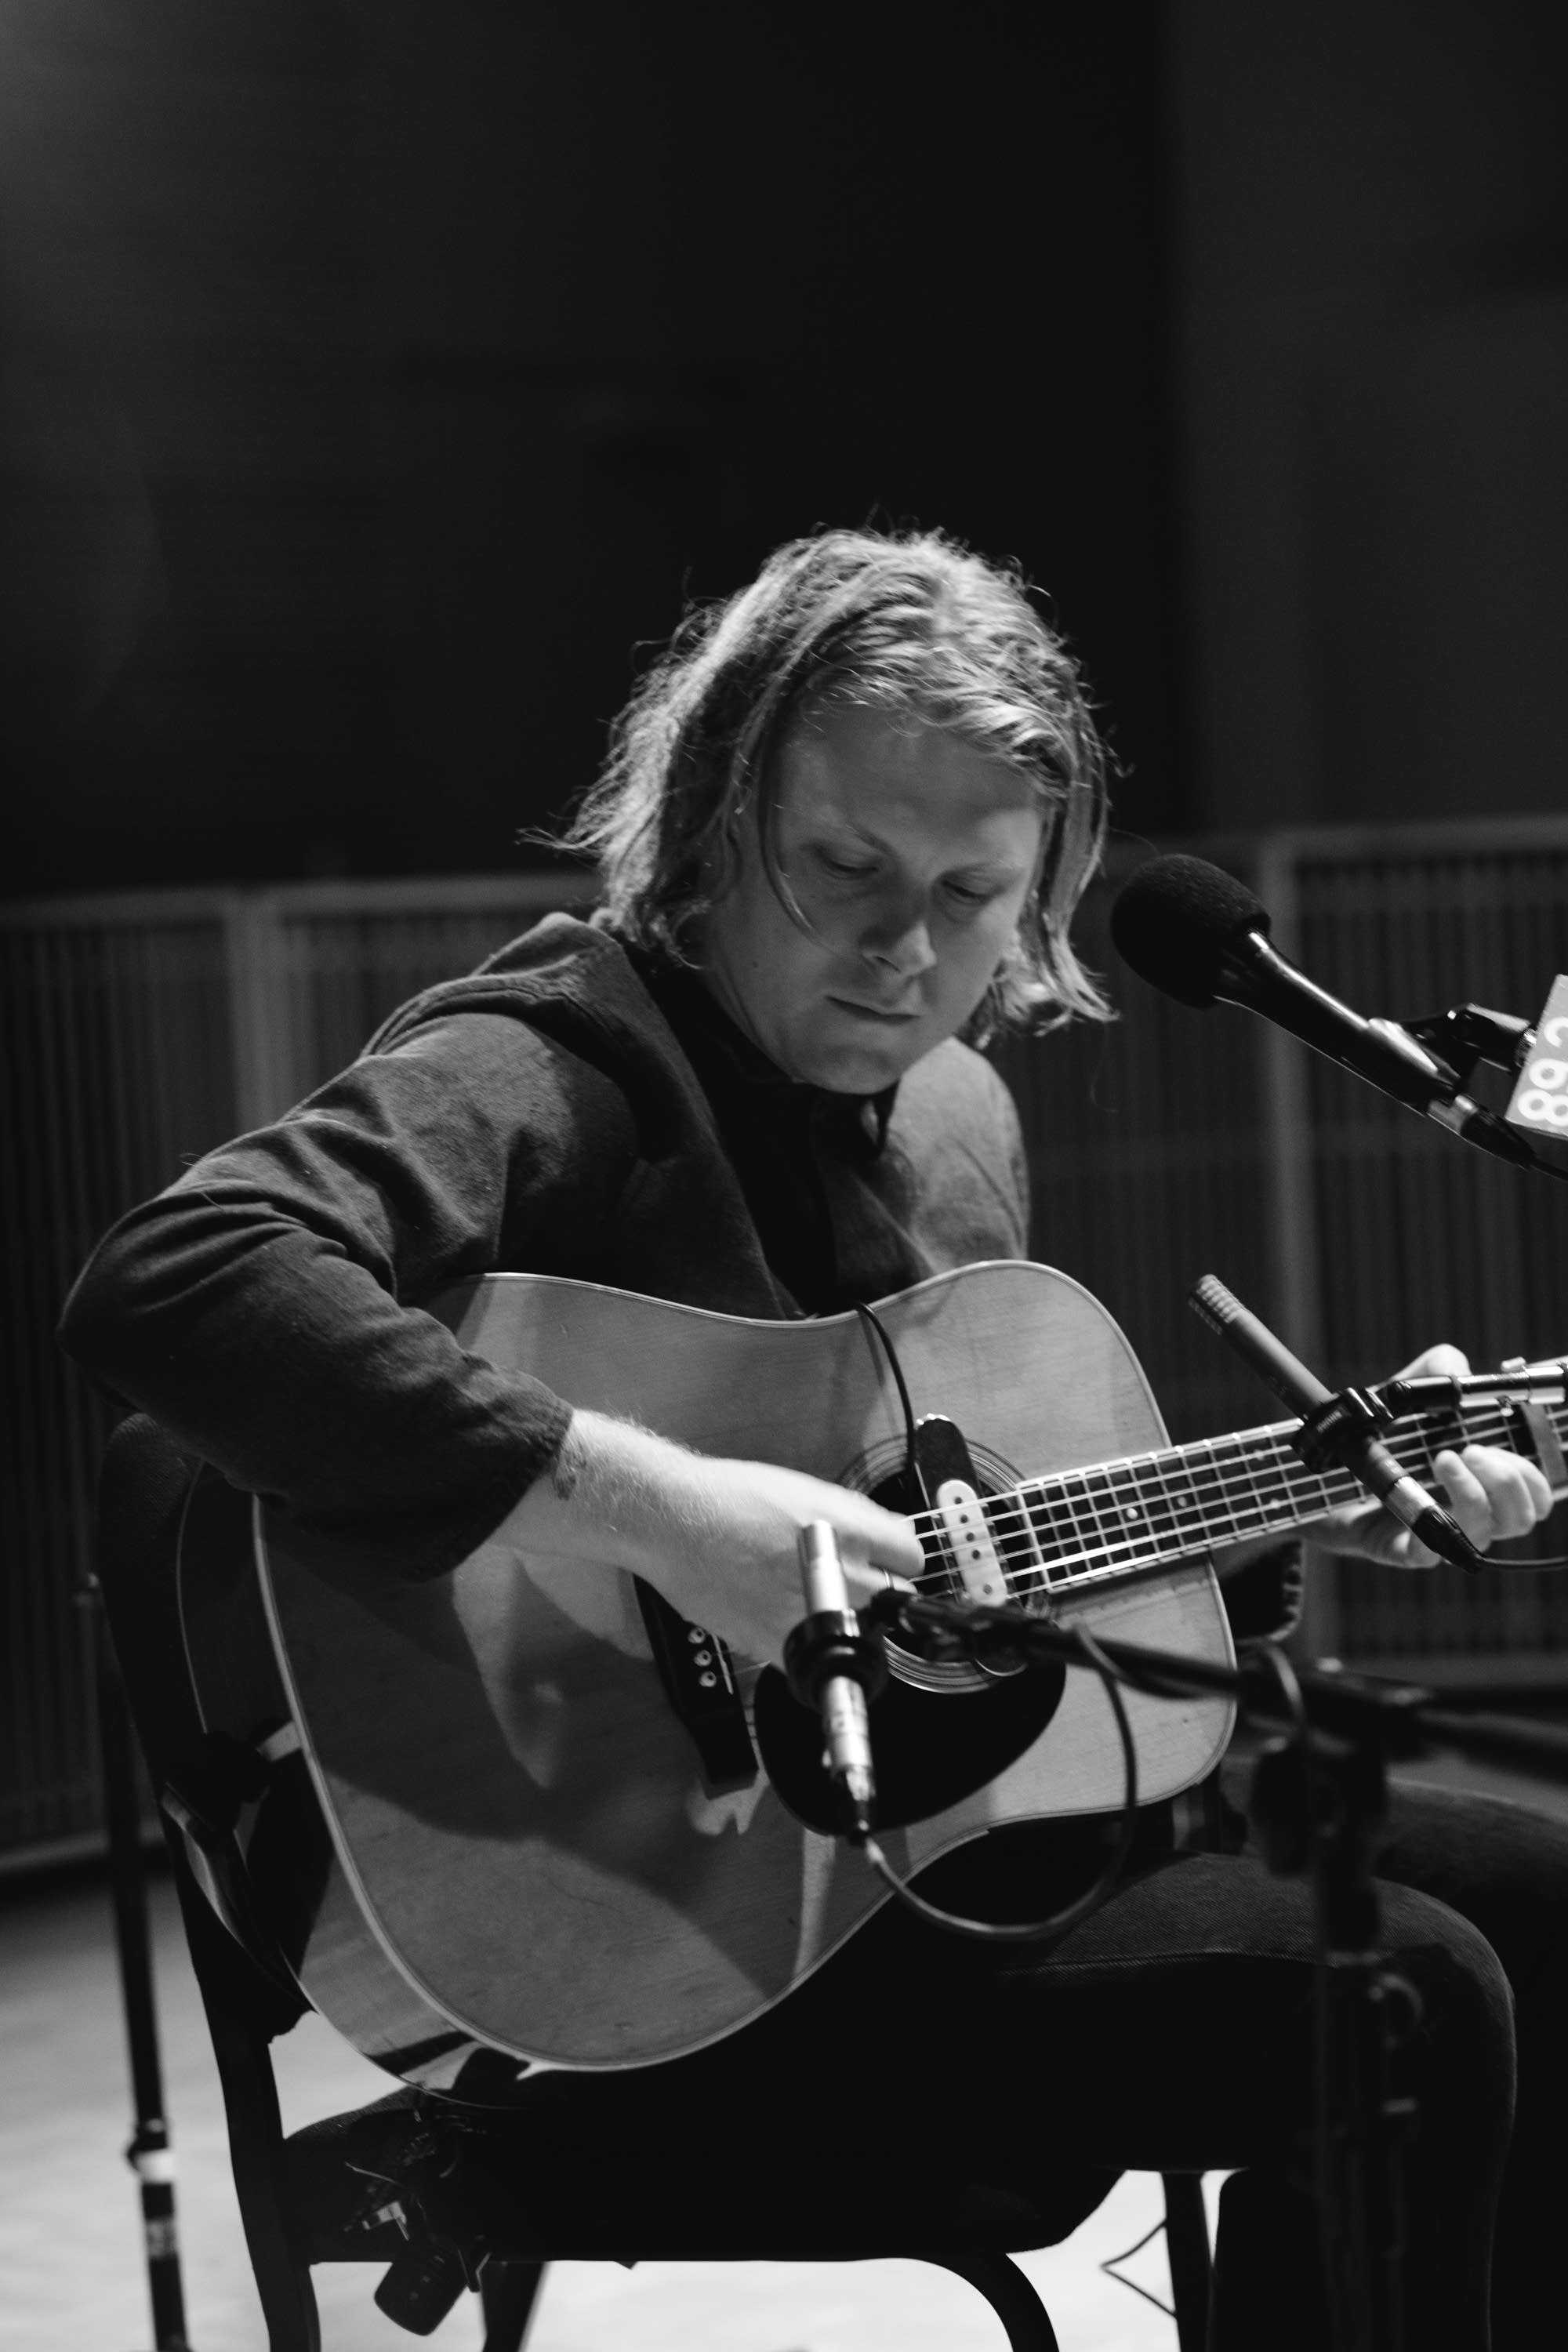 Ty Segall performs a solo acoustic set at The Current